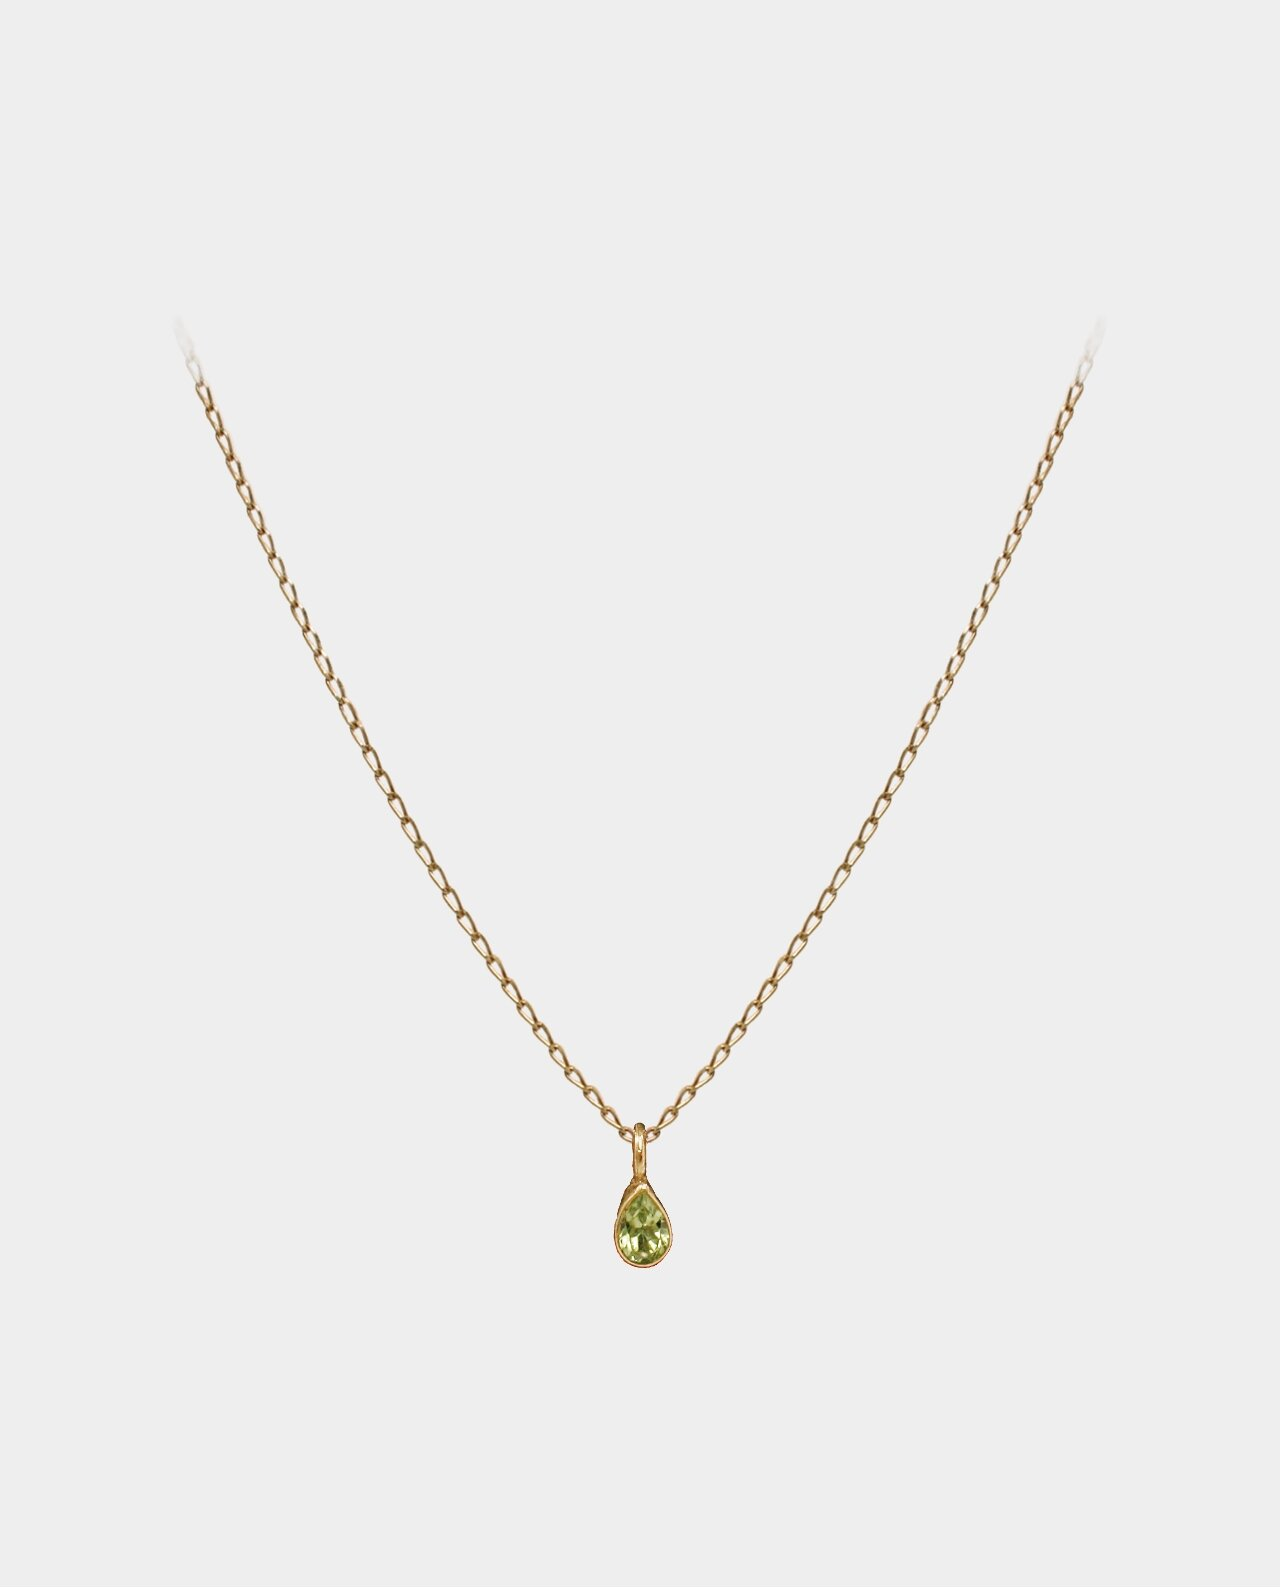 Necklace with blue peridot pendant whose reflections of light in the facets of the jewellery are compelling